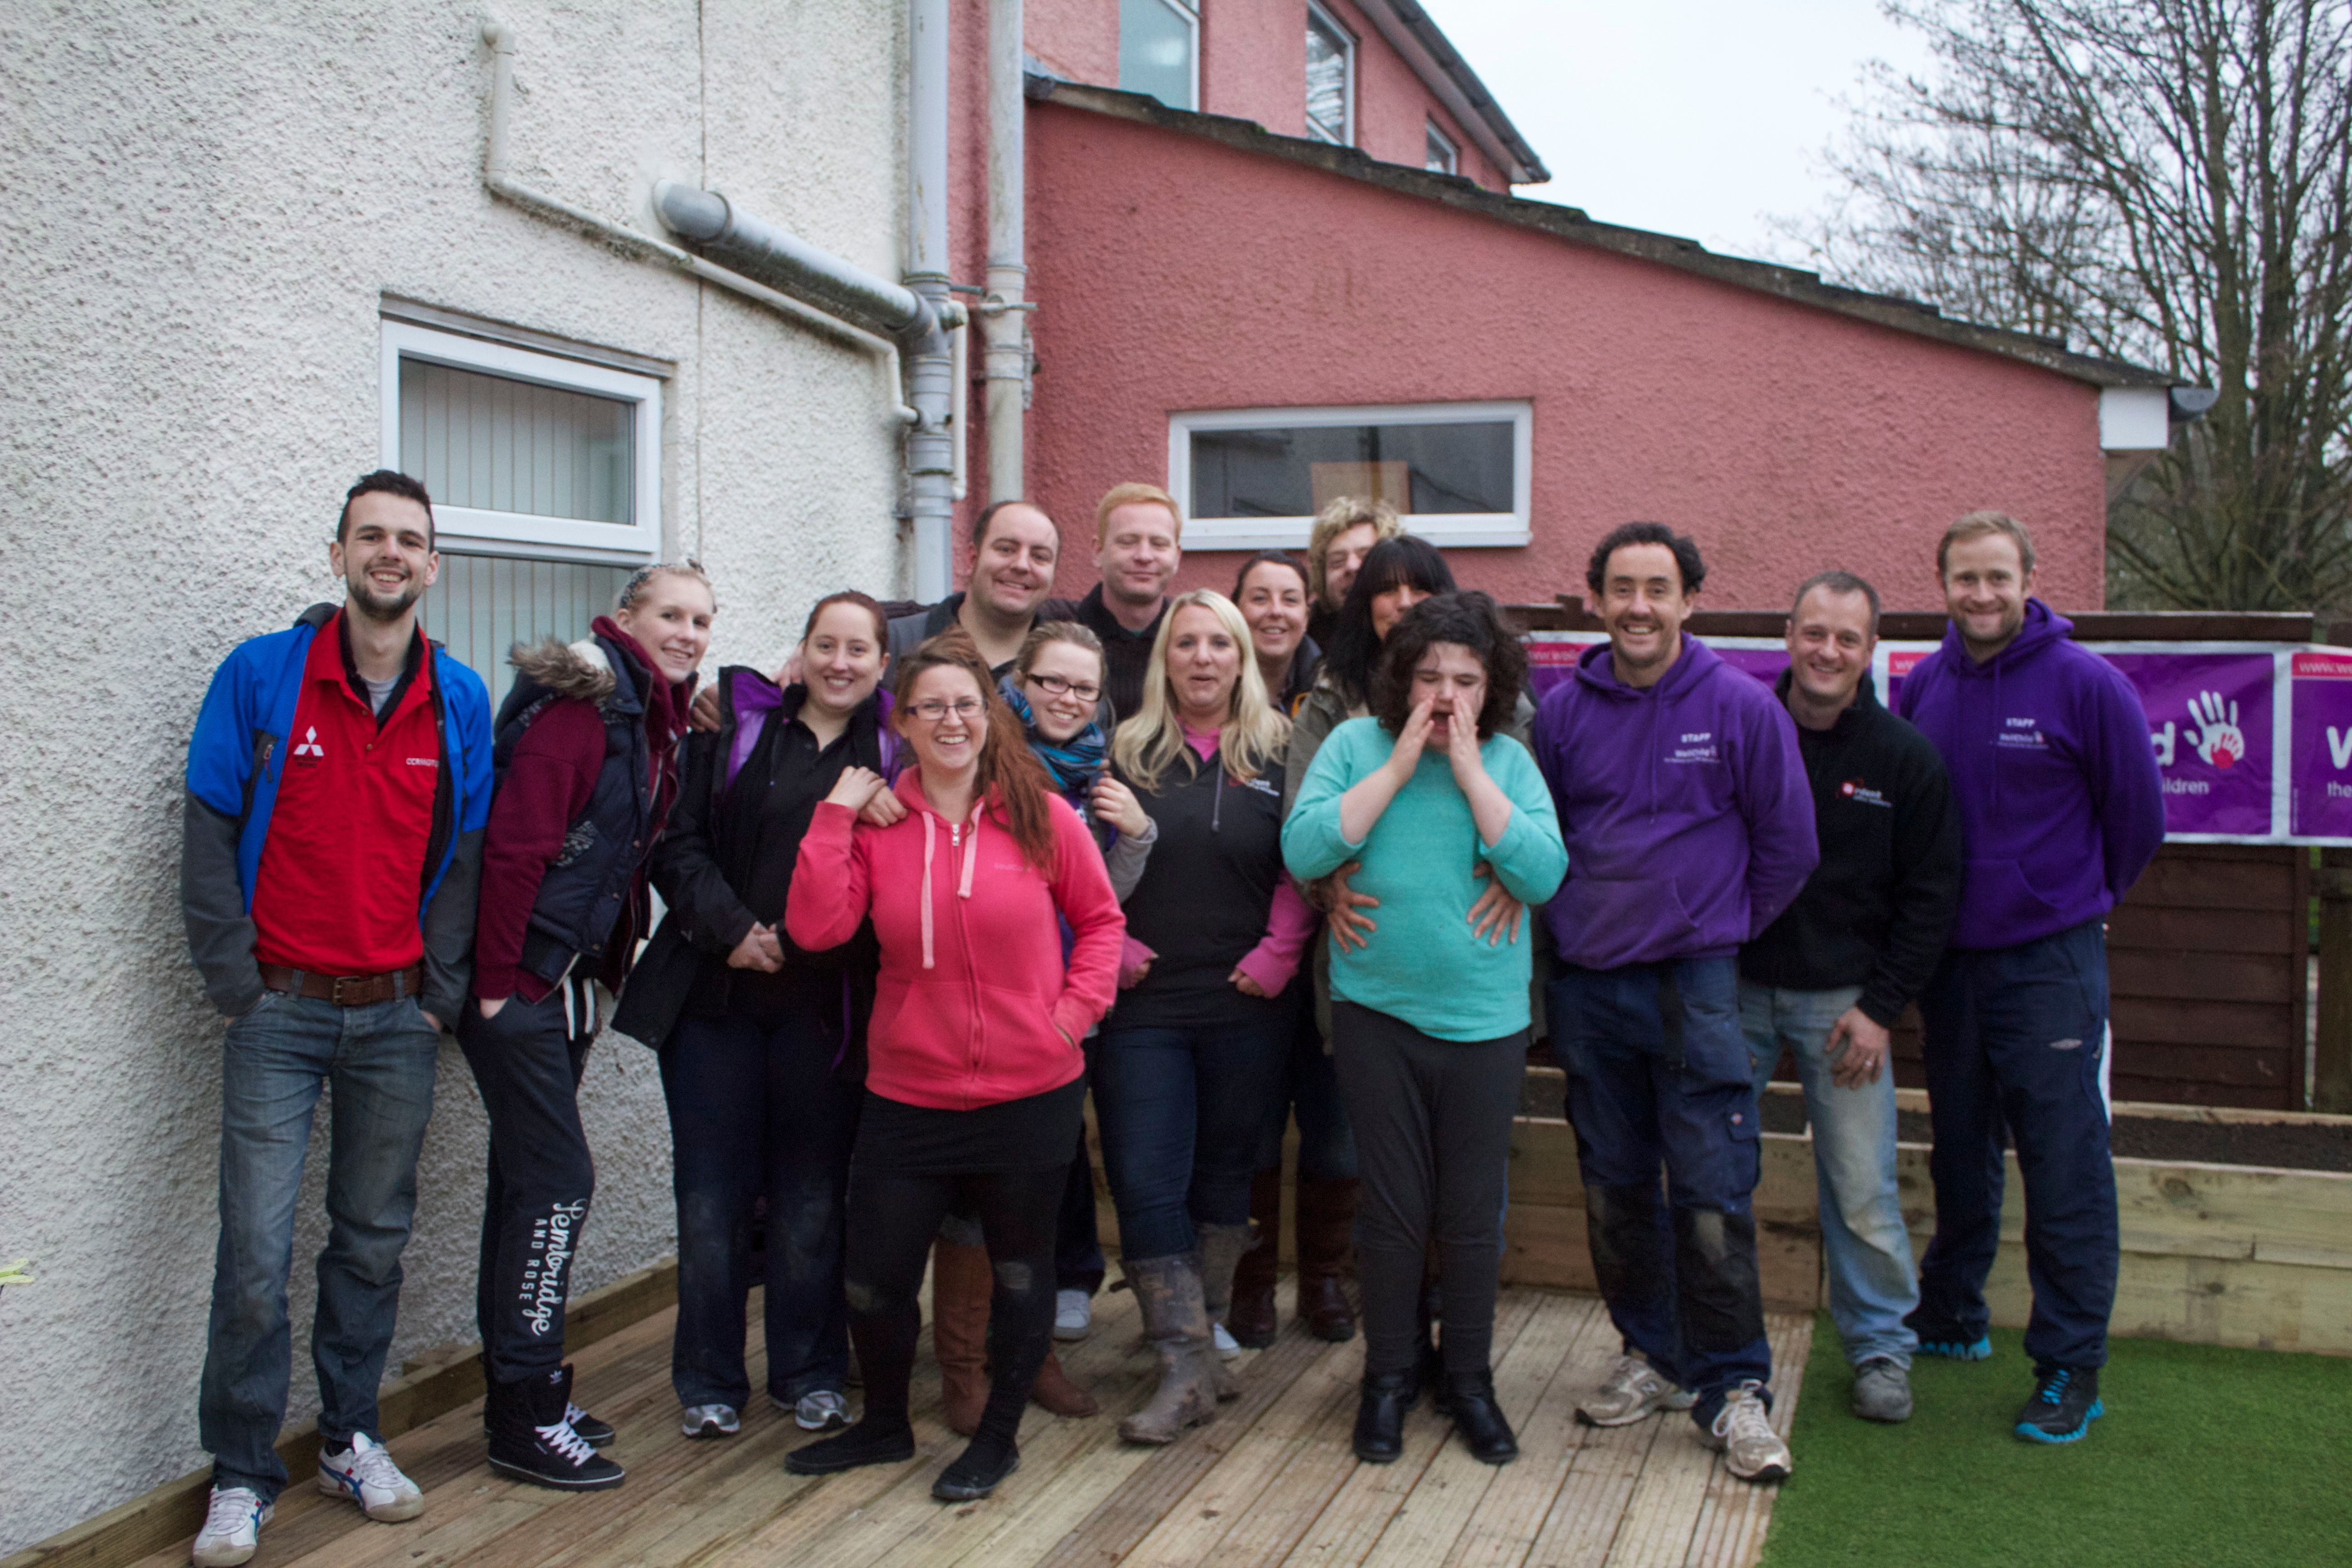 CCR MITSUBISHI HELP TRANSFORM GARDEN FOR SPECIAL TEENAGER